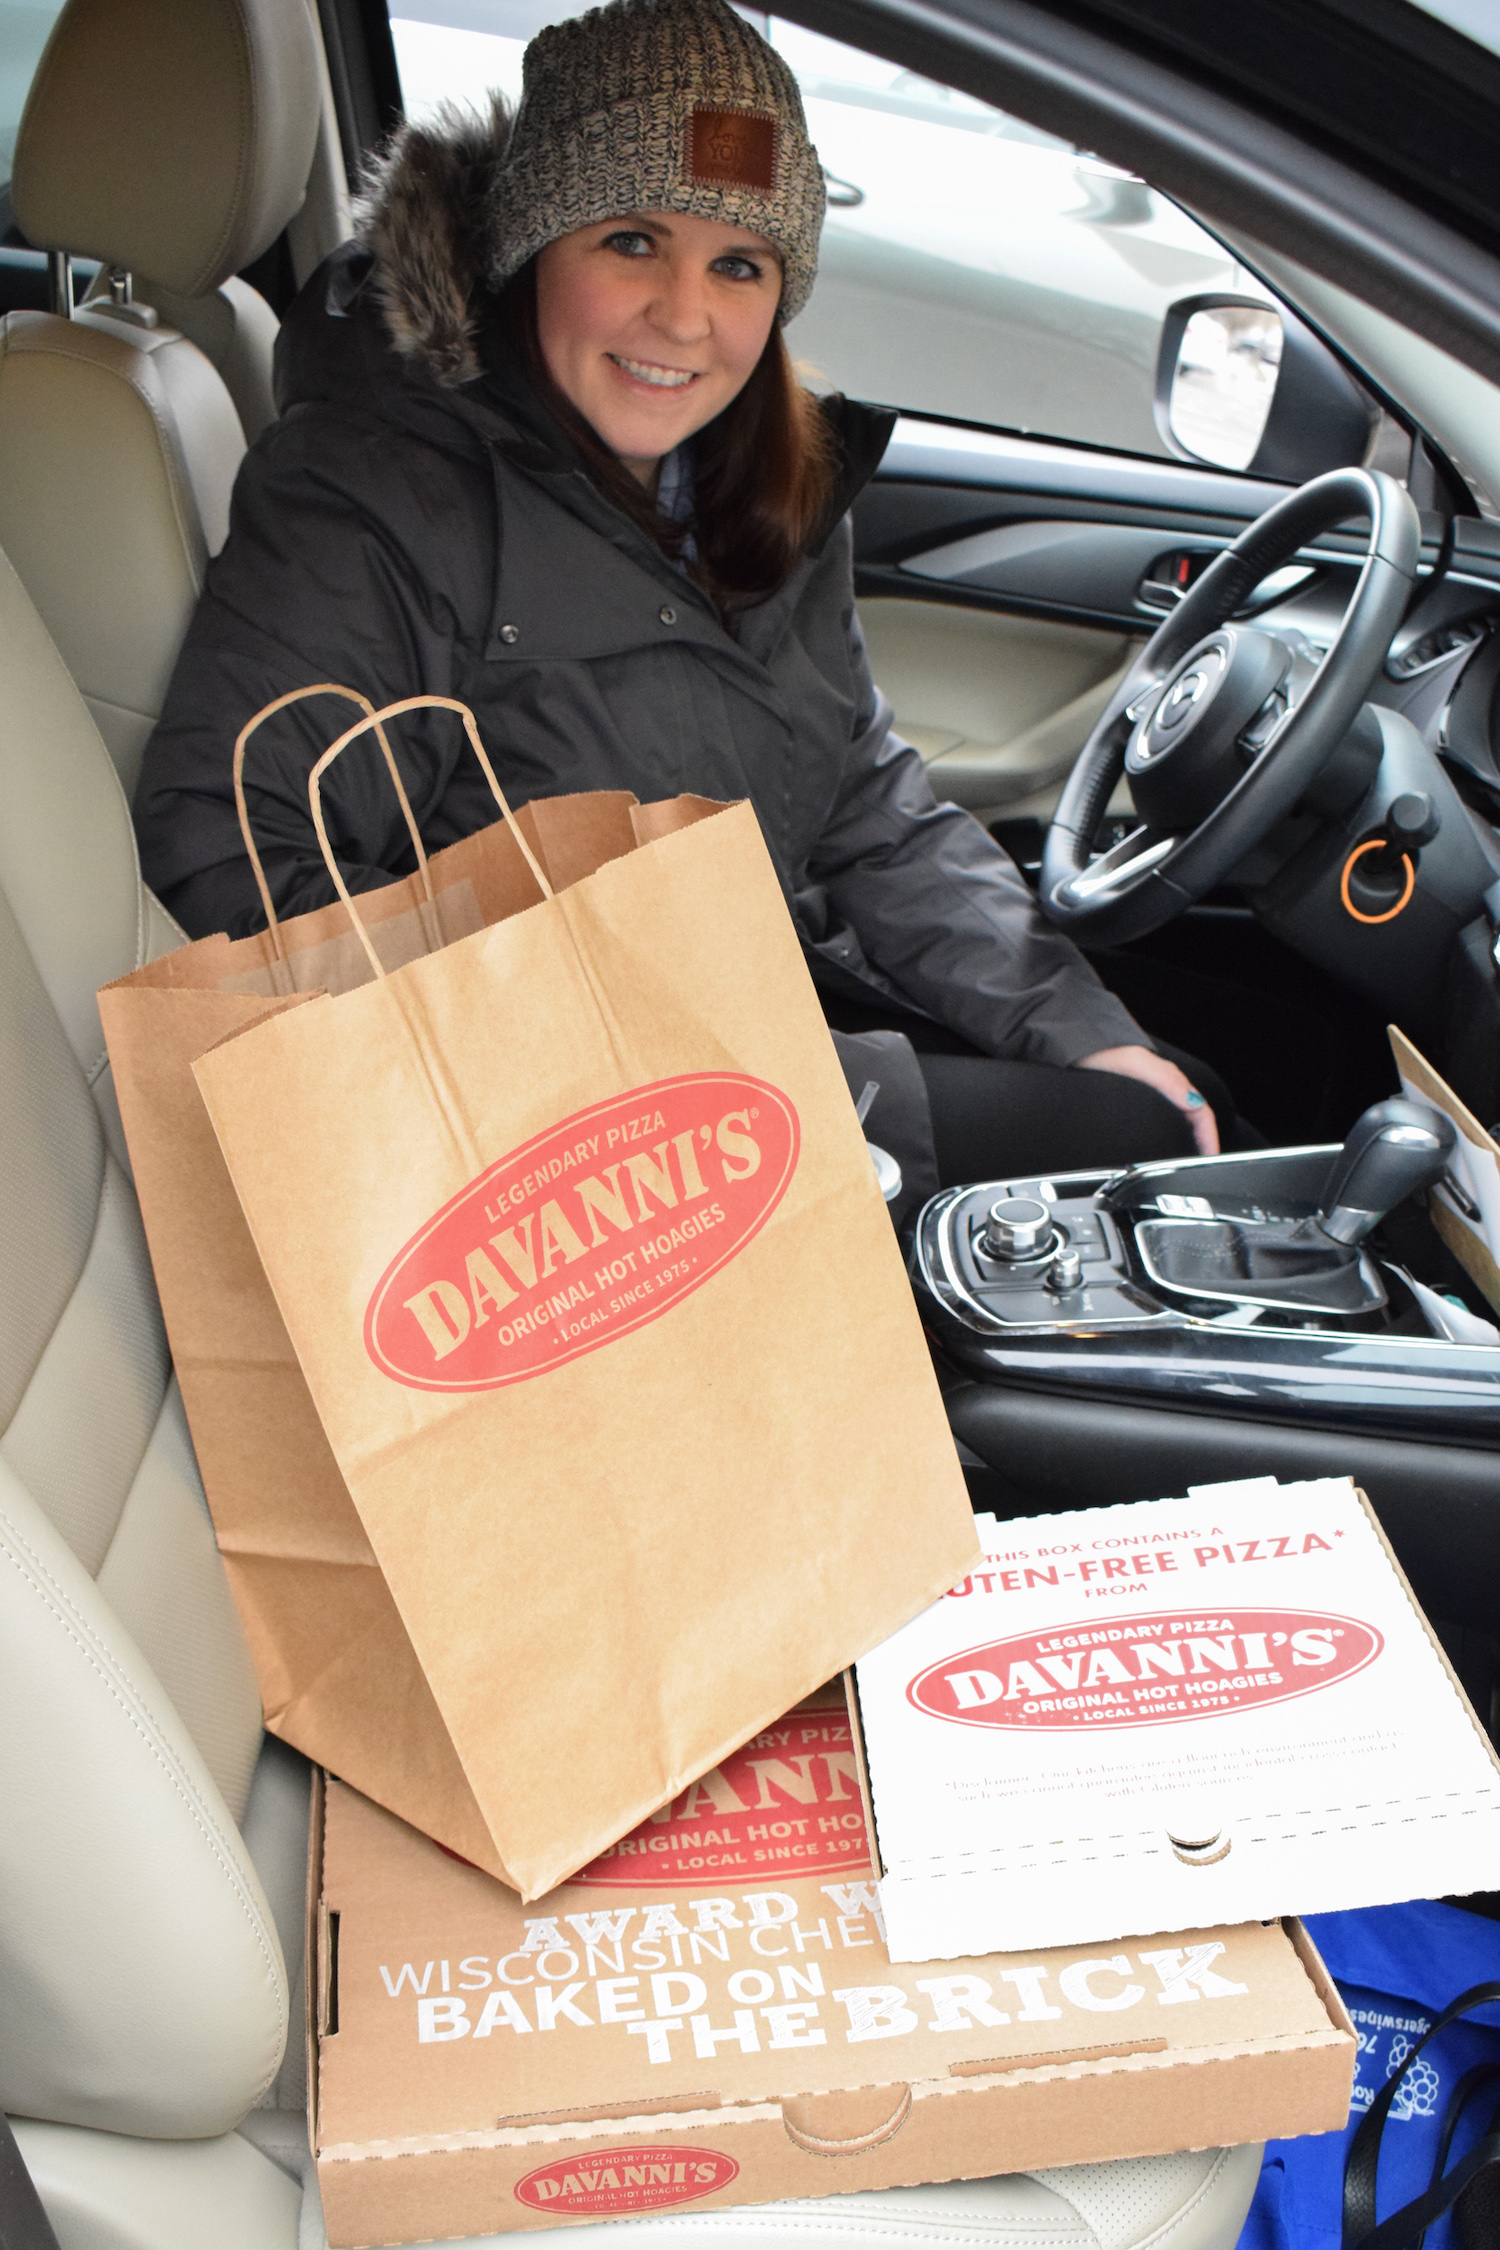 Davanni's offers Curbside Pick-Up. You can call and request it when ordering or select Curbside when ordering online!